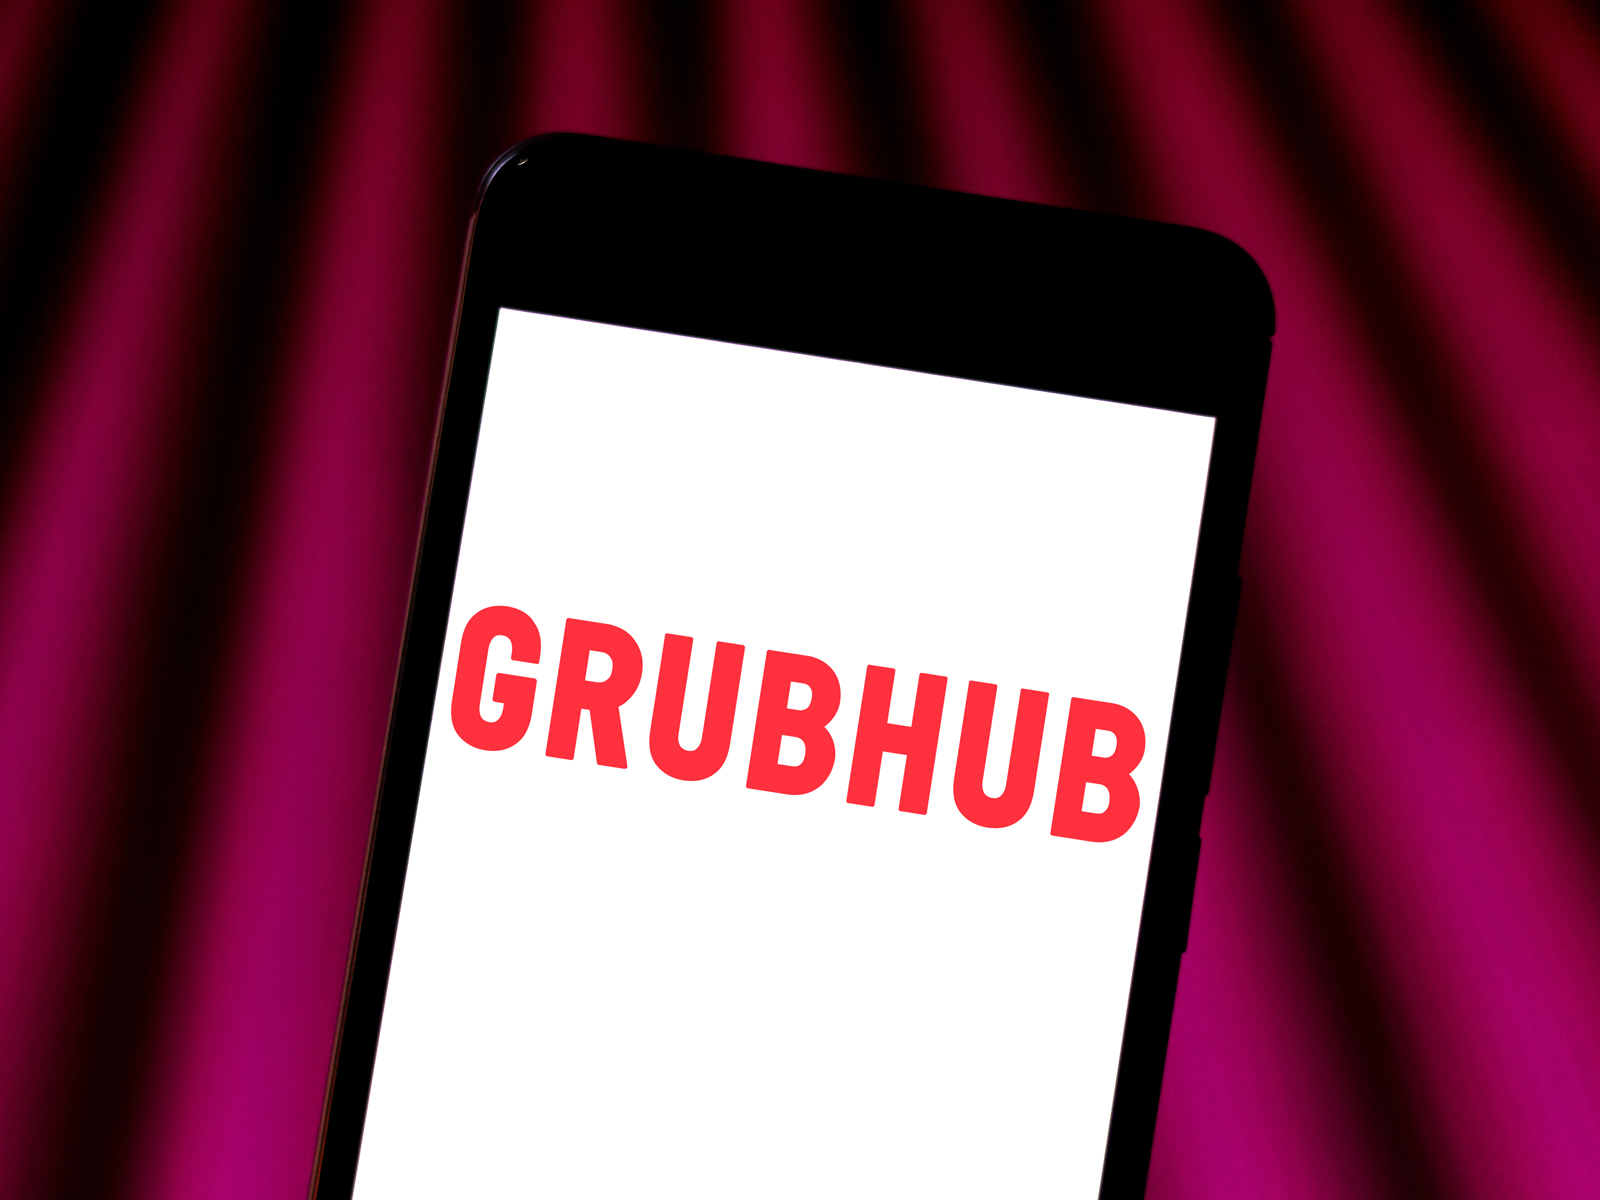 grubhub-fake-websites-FT-BLOG0719.jpg